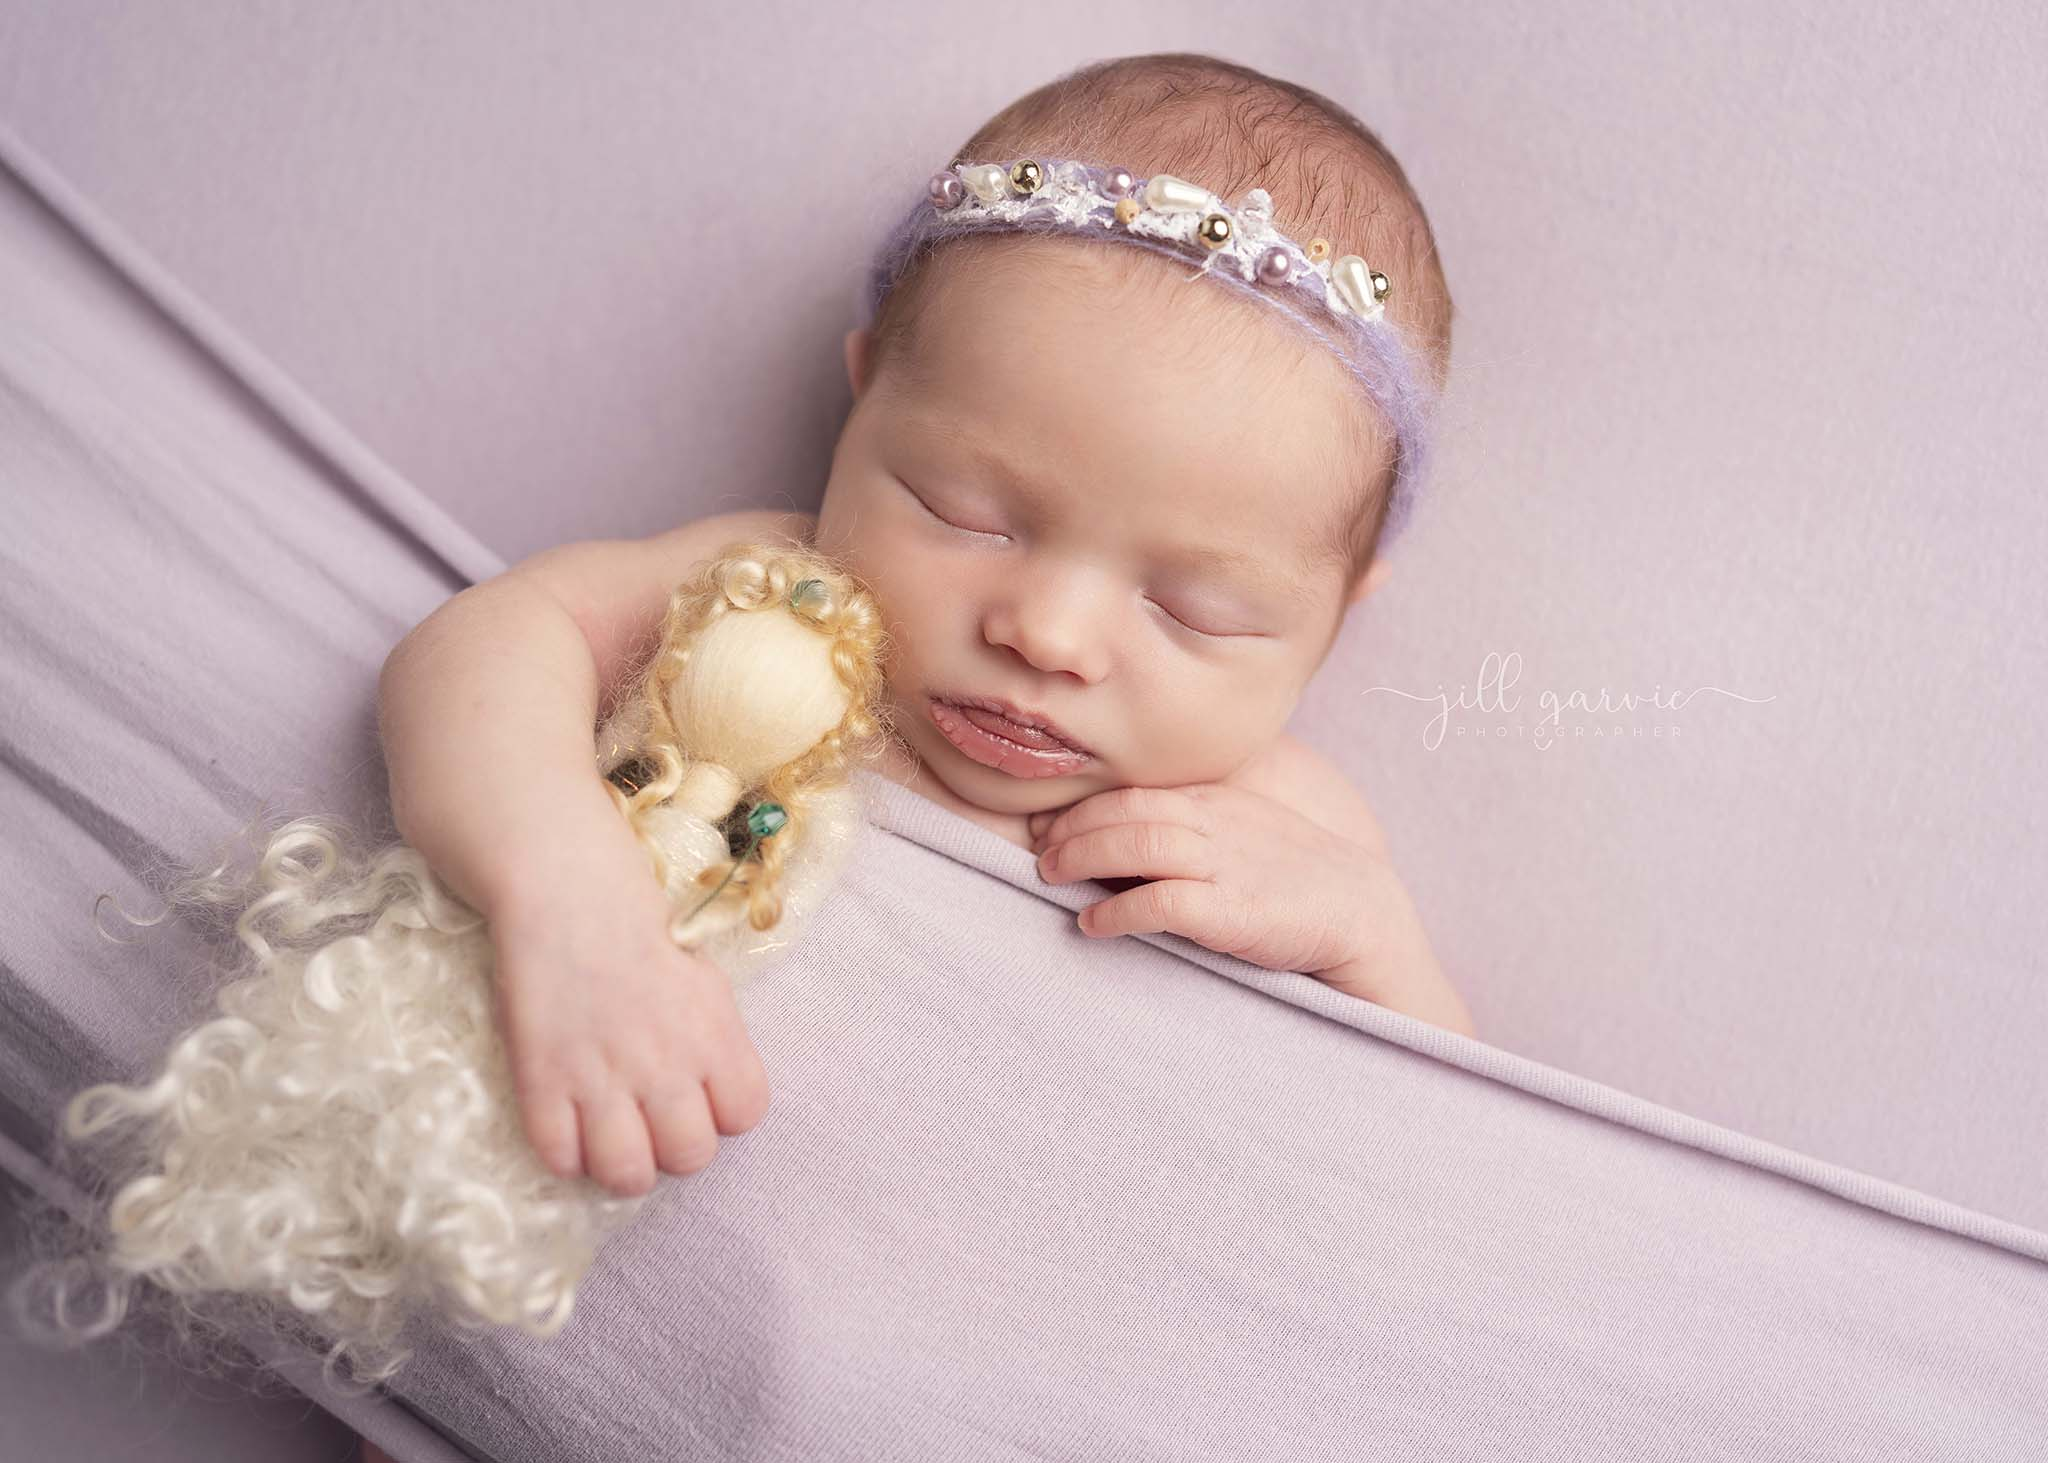 Photograph of Newborn baby taken at Jill Garvie Photography studio in Edinburgh